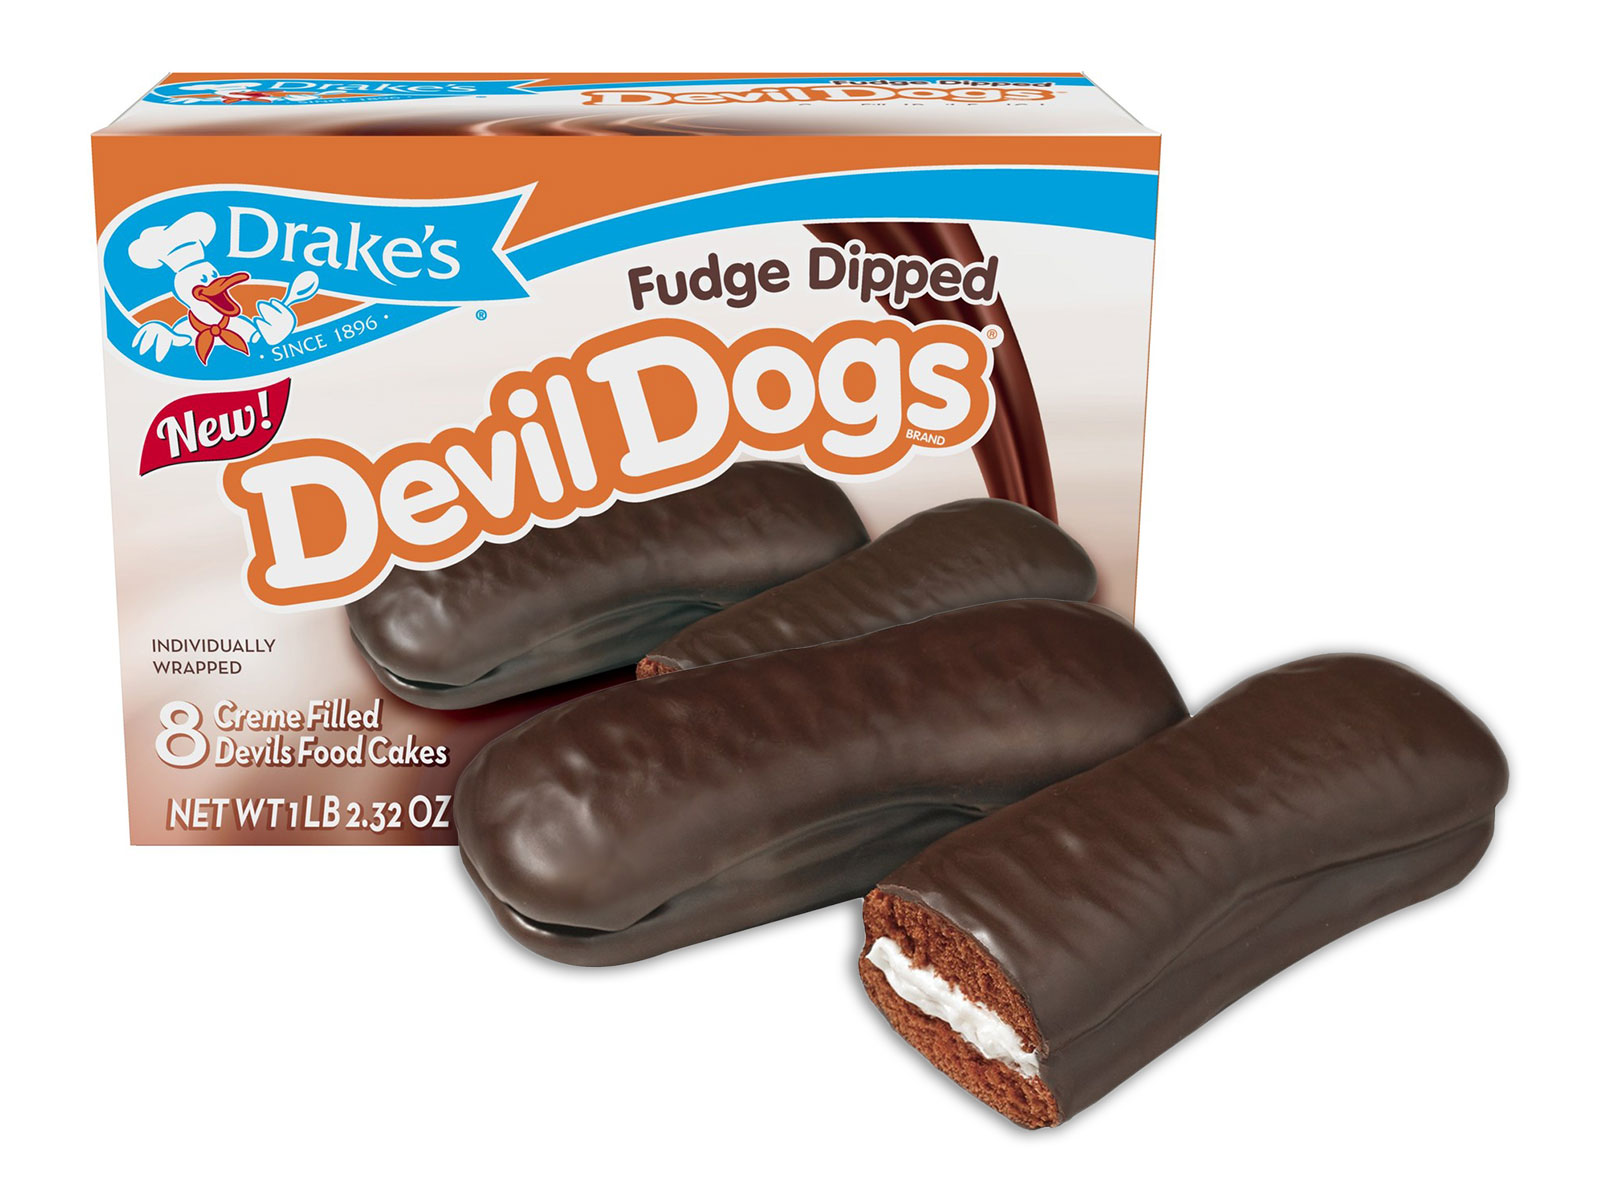 Behold: The First Devil Dogs Spinoff in 91 Years